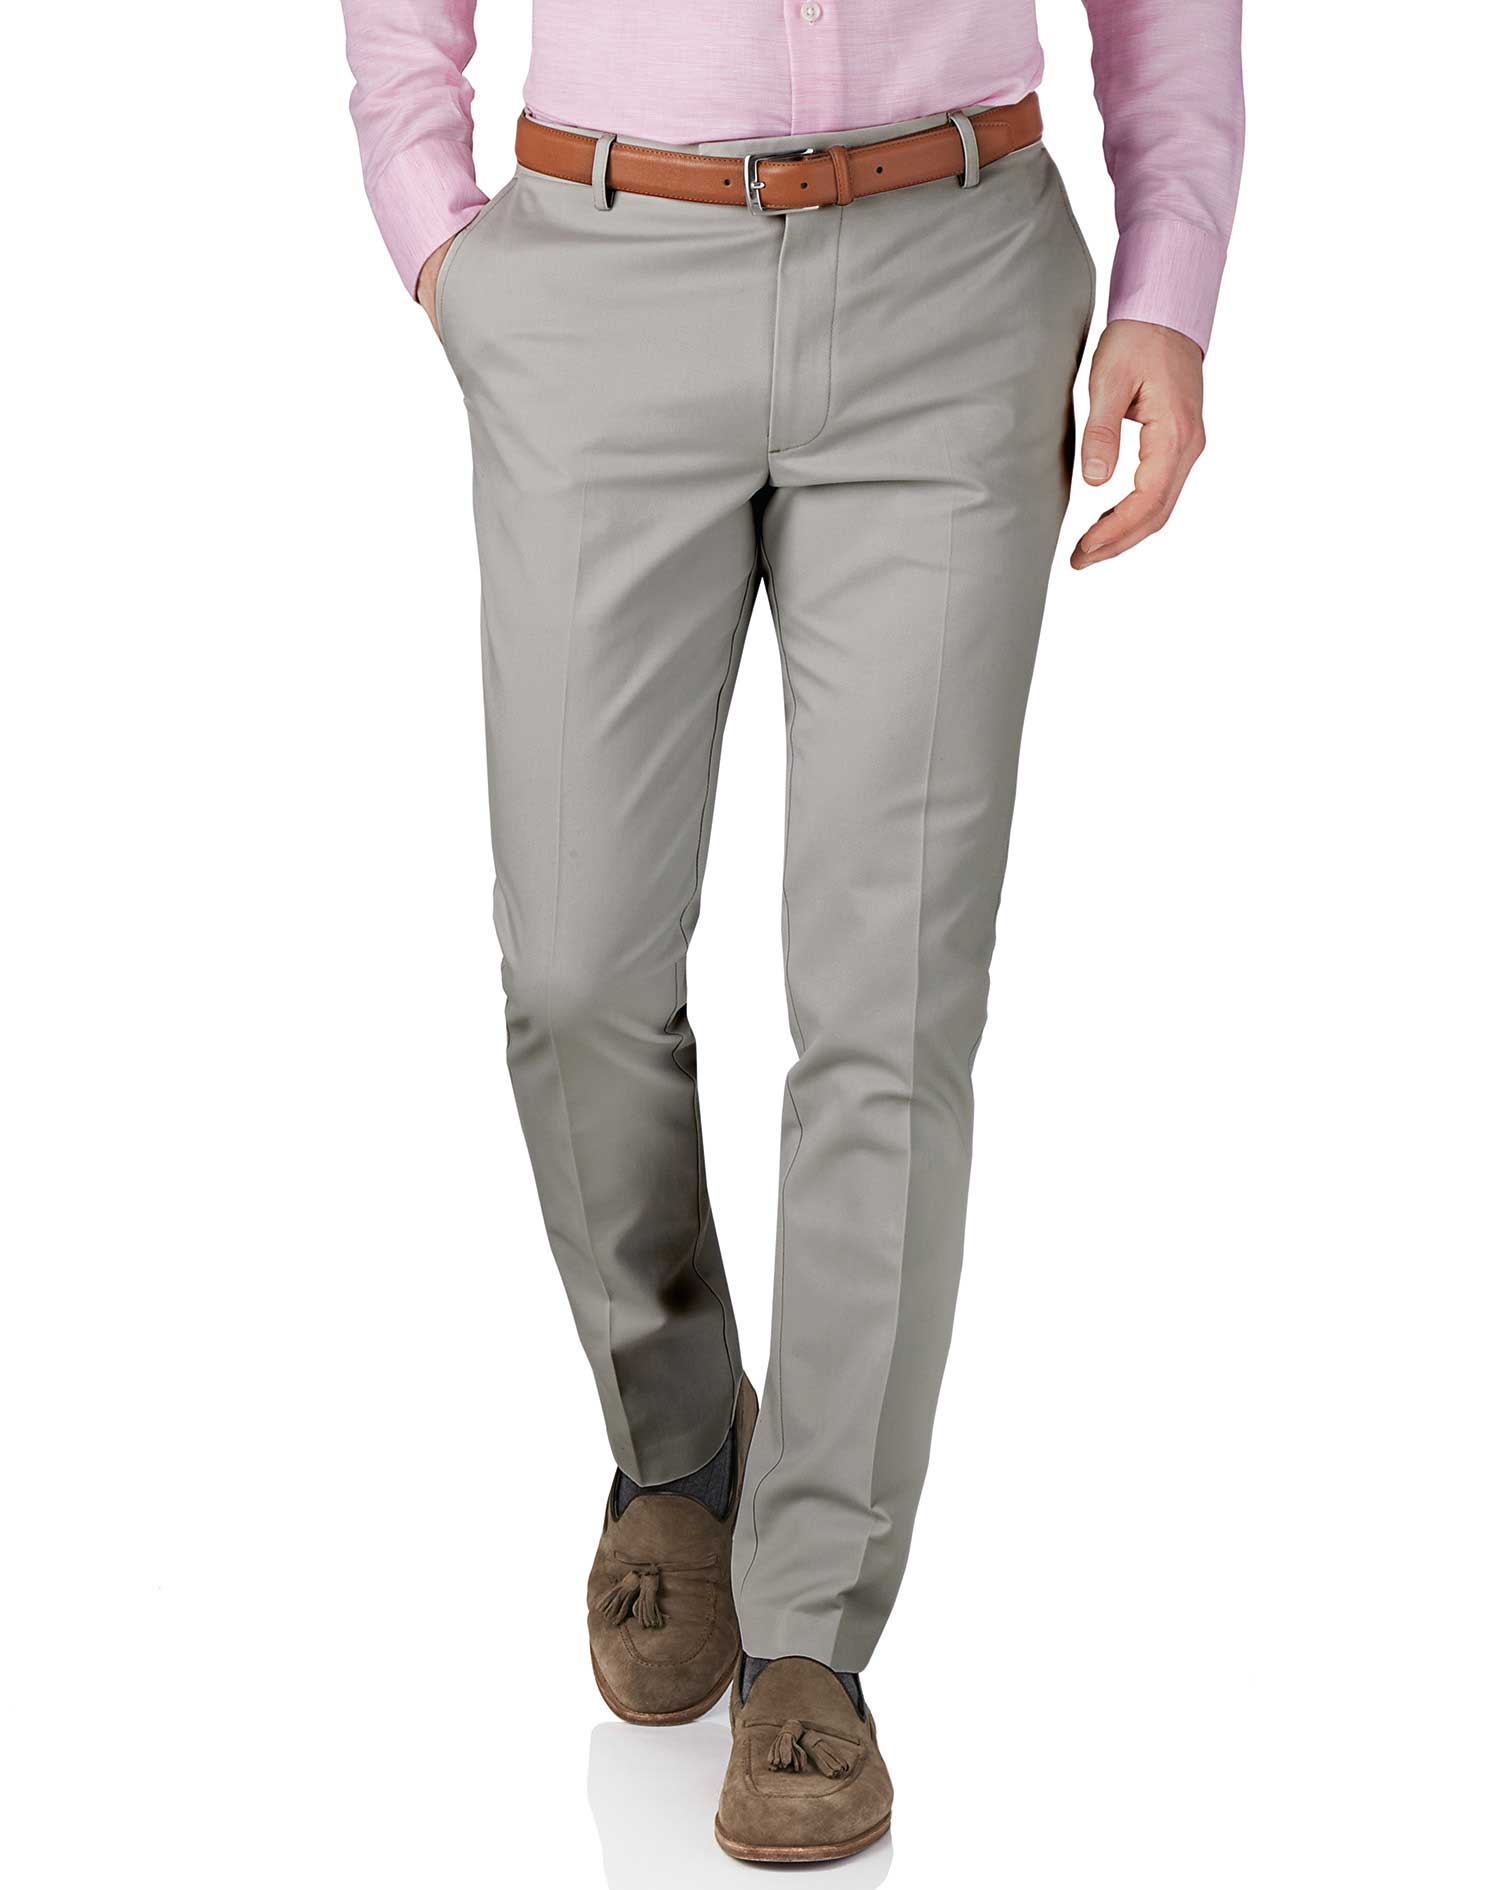 Silver Grey Extra Slim Fit Flat Front Non-Iron Cotton Chino Trousers Size W34 L32 by Charles Tyrwhit